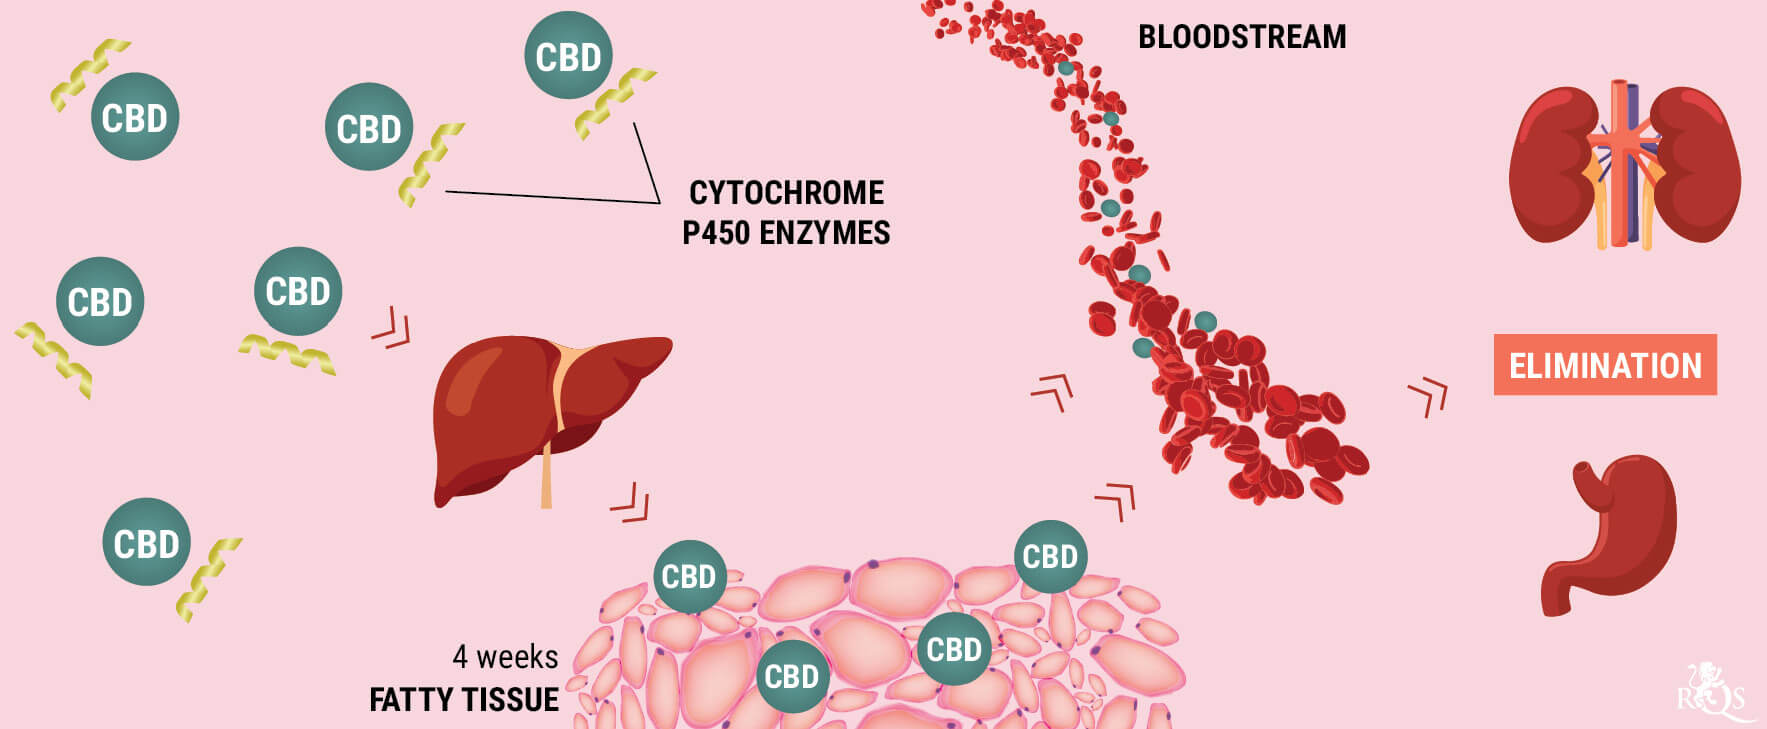 How Does the Body Metabolise CBD?